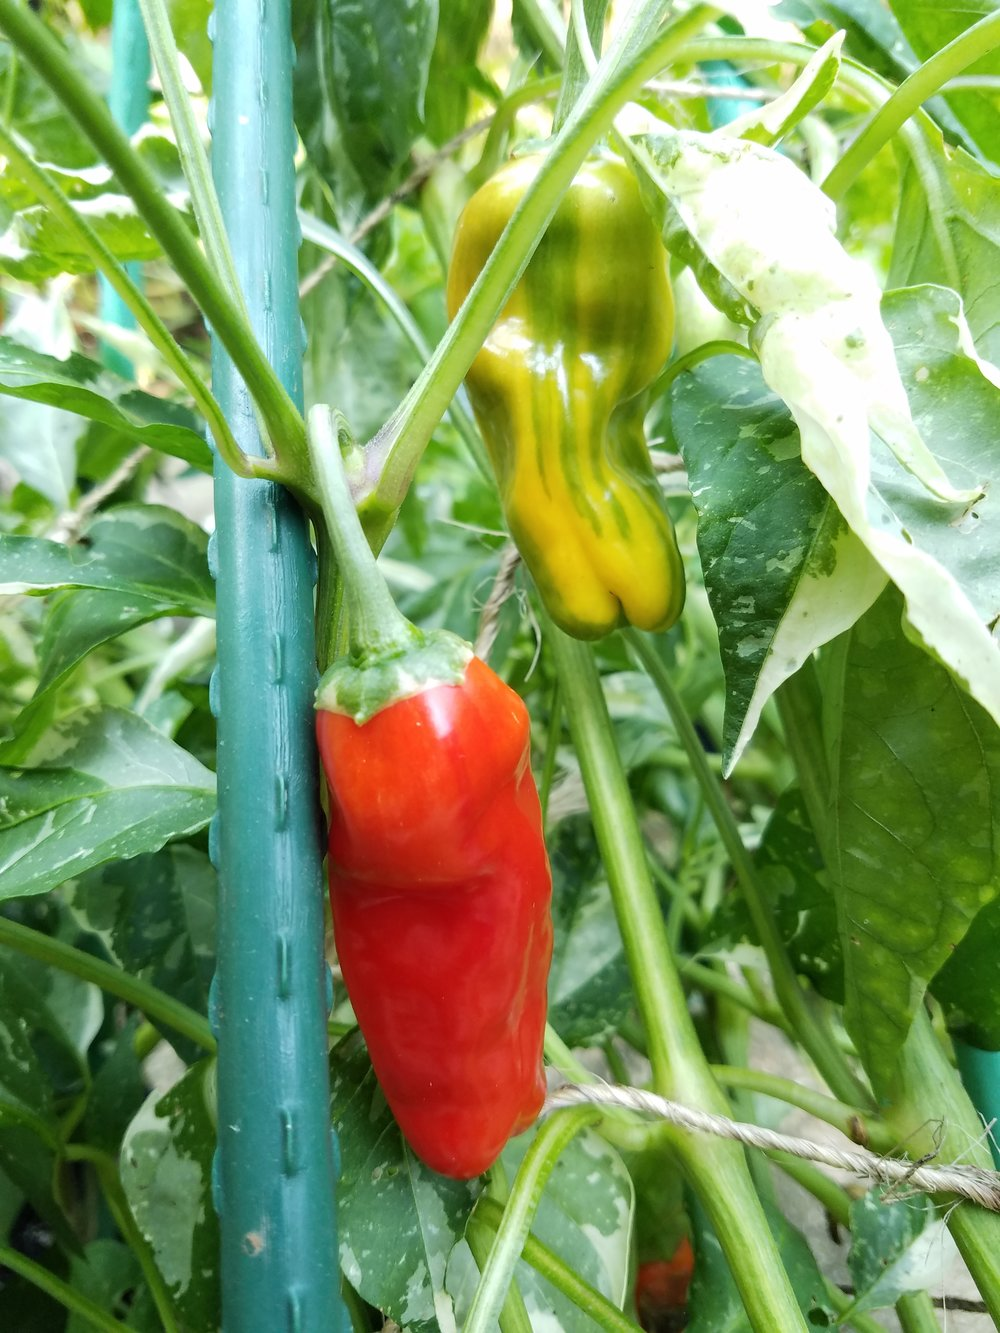 Variegated sweet pepper selection